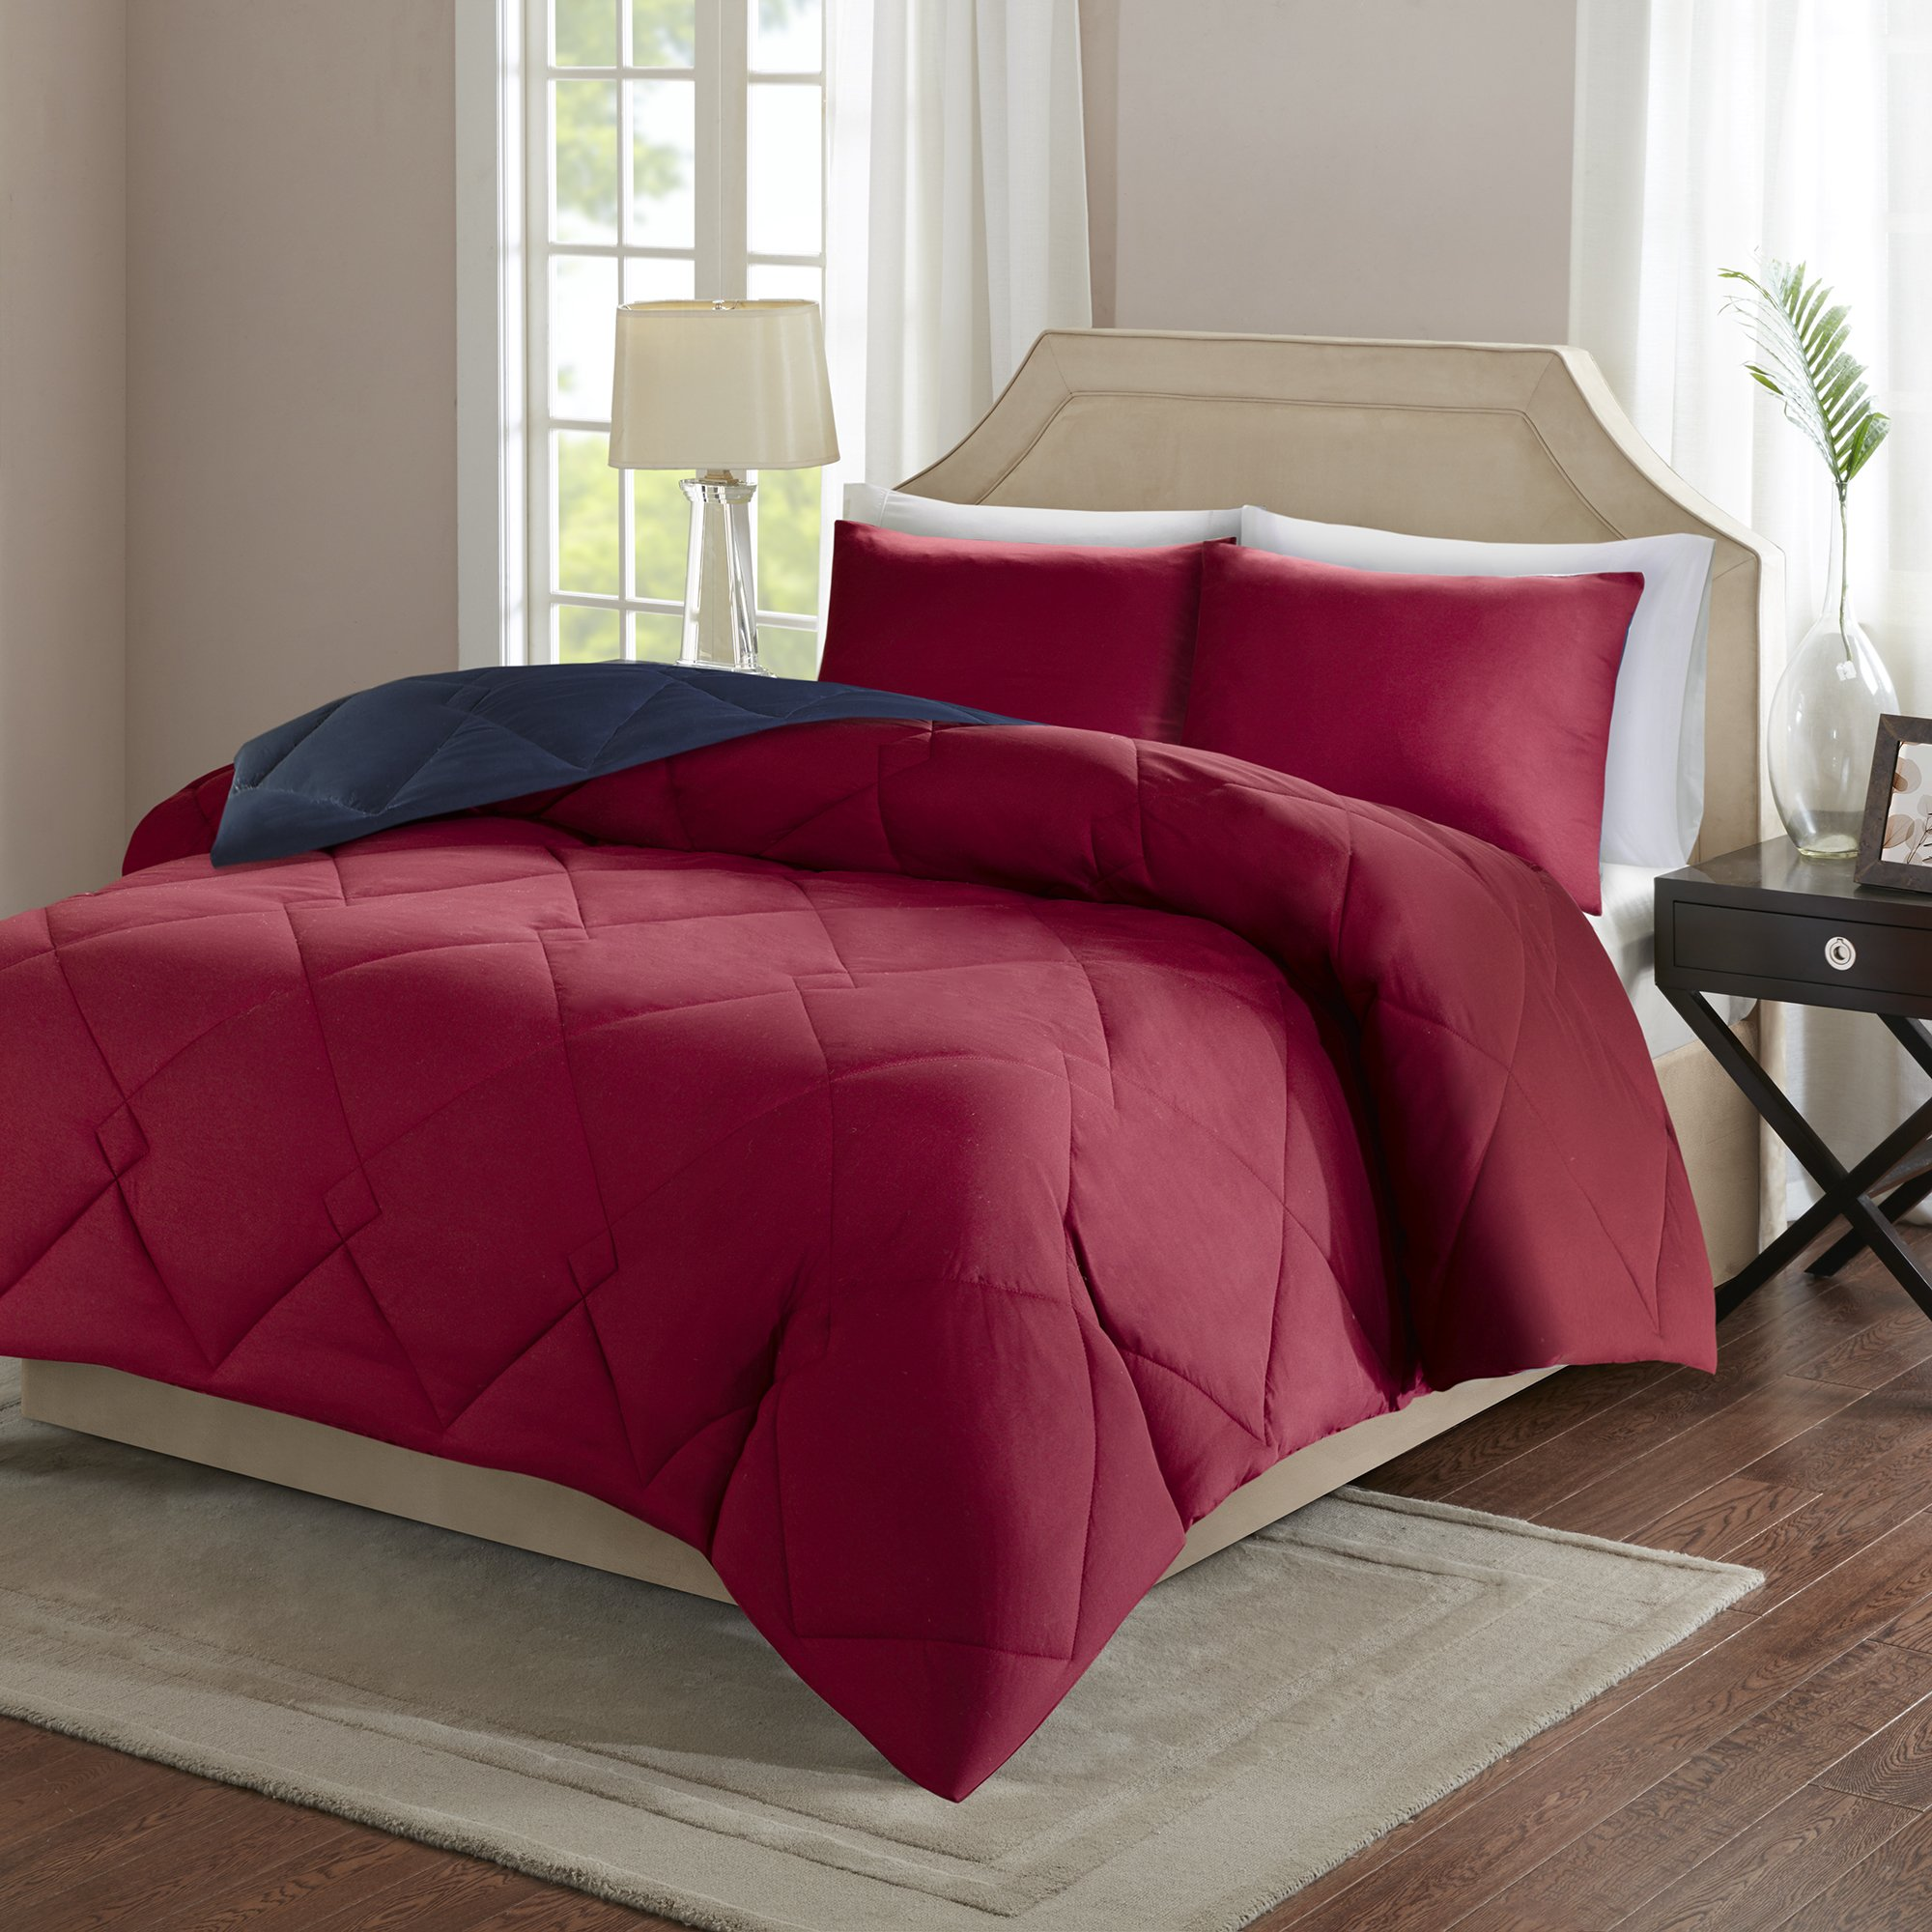 Comfort Spaces – Vixie Reversible Goose Down Alternative Comforter Mini Set - 2 Piece – Red and Navy – Stitched Geometrical Diamond Pattern – Twin/Twin XL size, includes 1 Comforter, 1 Sham by Comfort Spaces